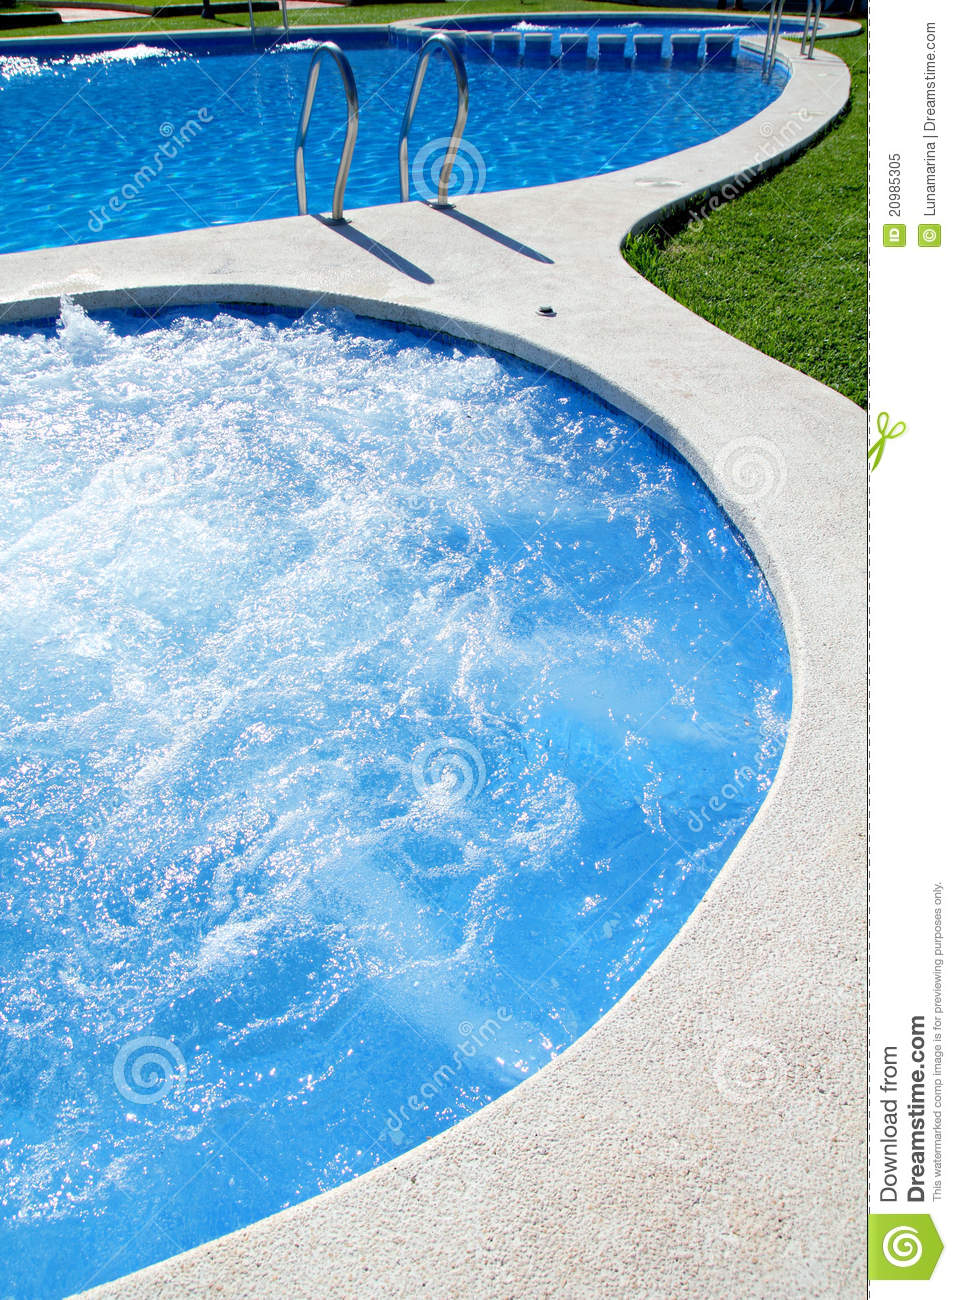 Pool and Spa Clip Art.